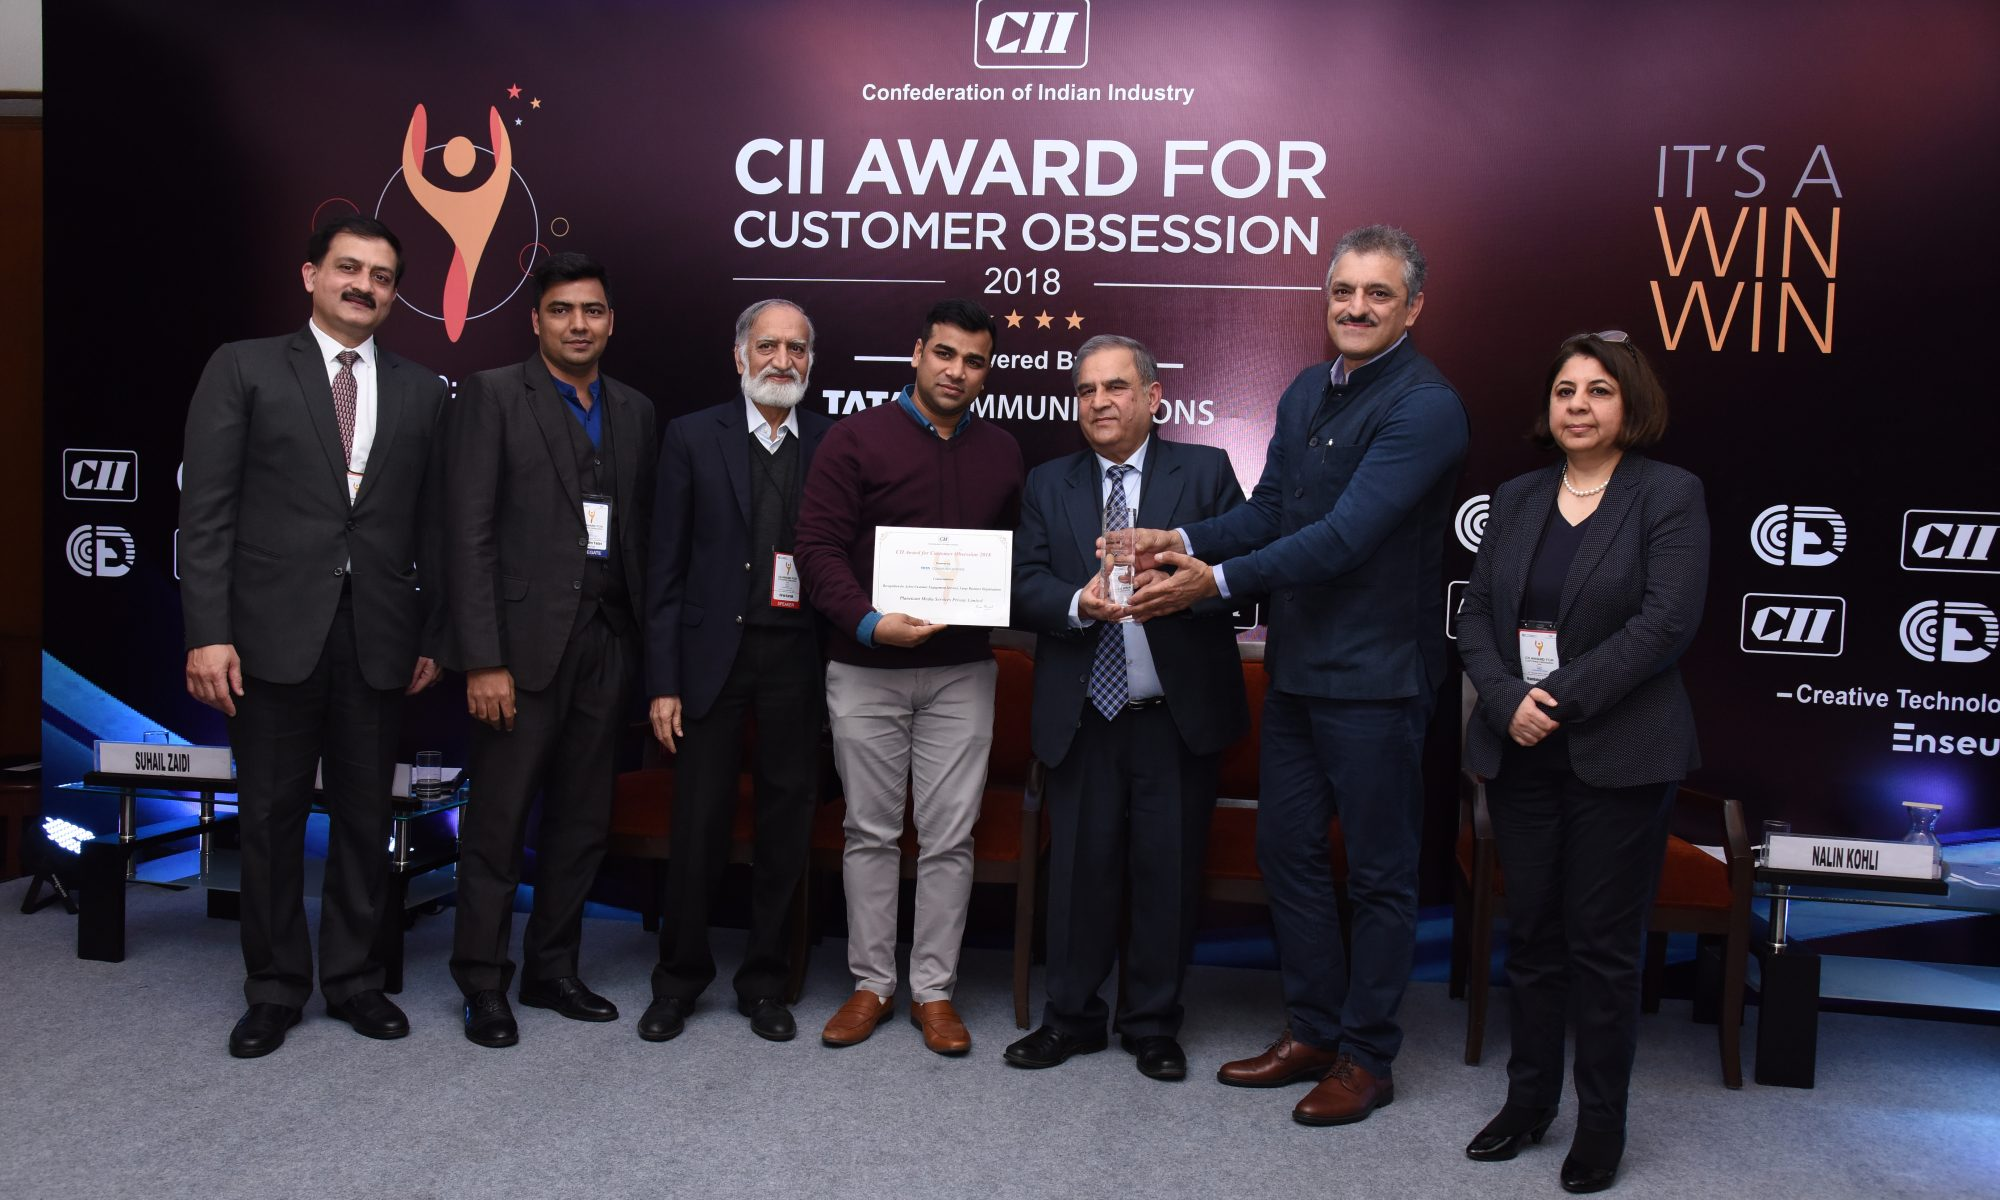 Sanjay Duda, COO, Planetcast, receiving the award from the Jury Chairman Kiran Karnik